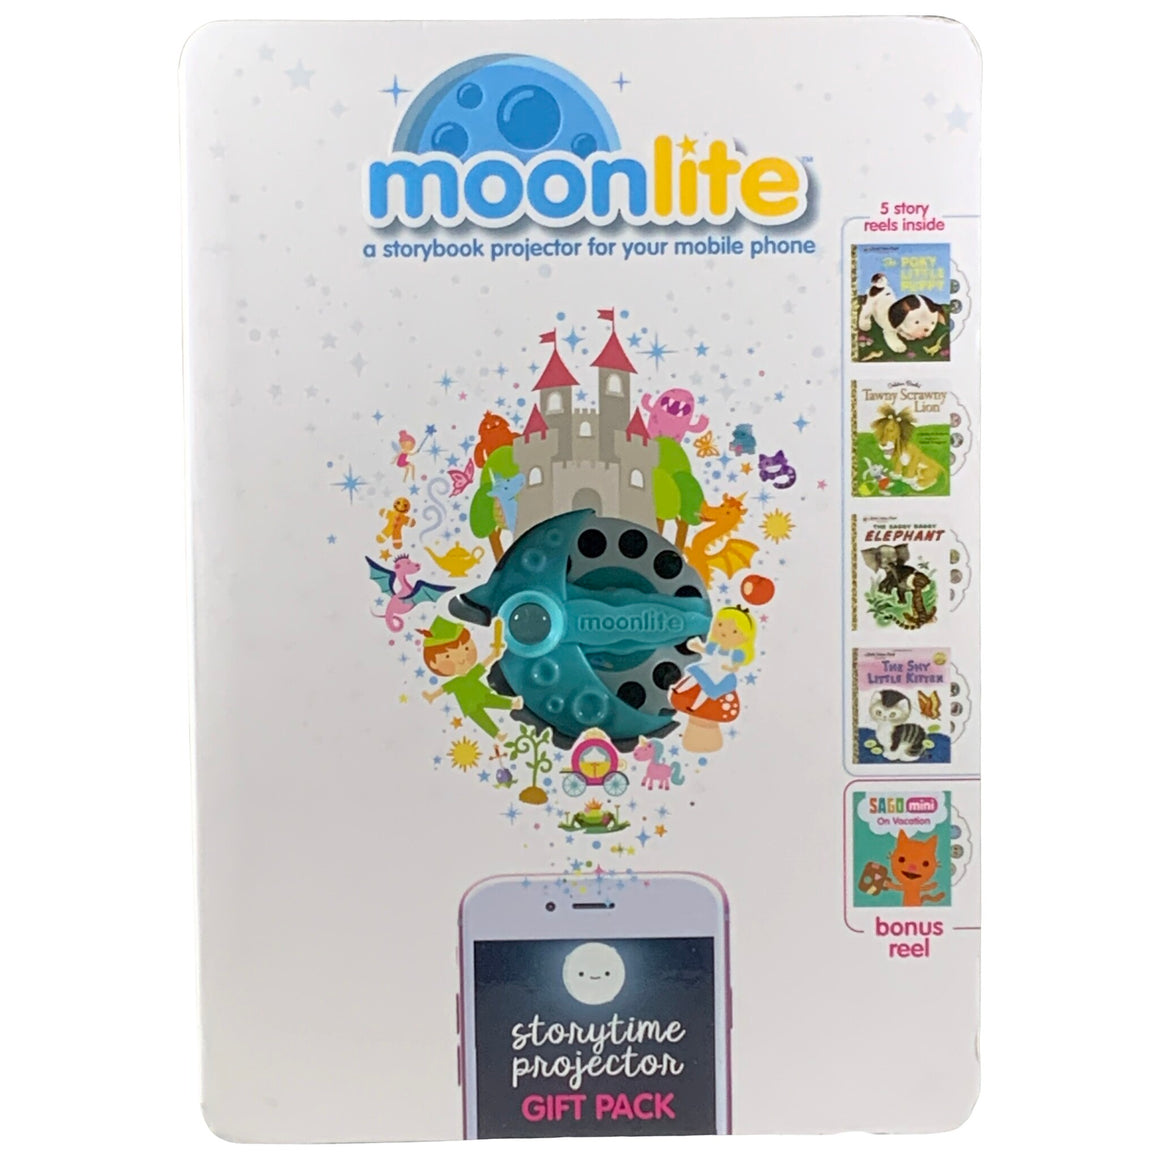 Gift Pack - Storybook Projector For Smartphones With 5 Stories - Moonlite